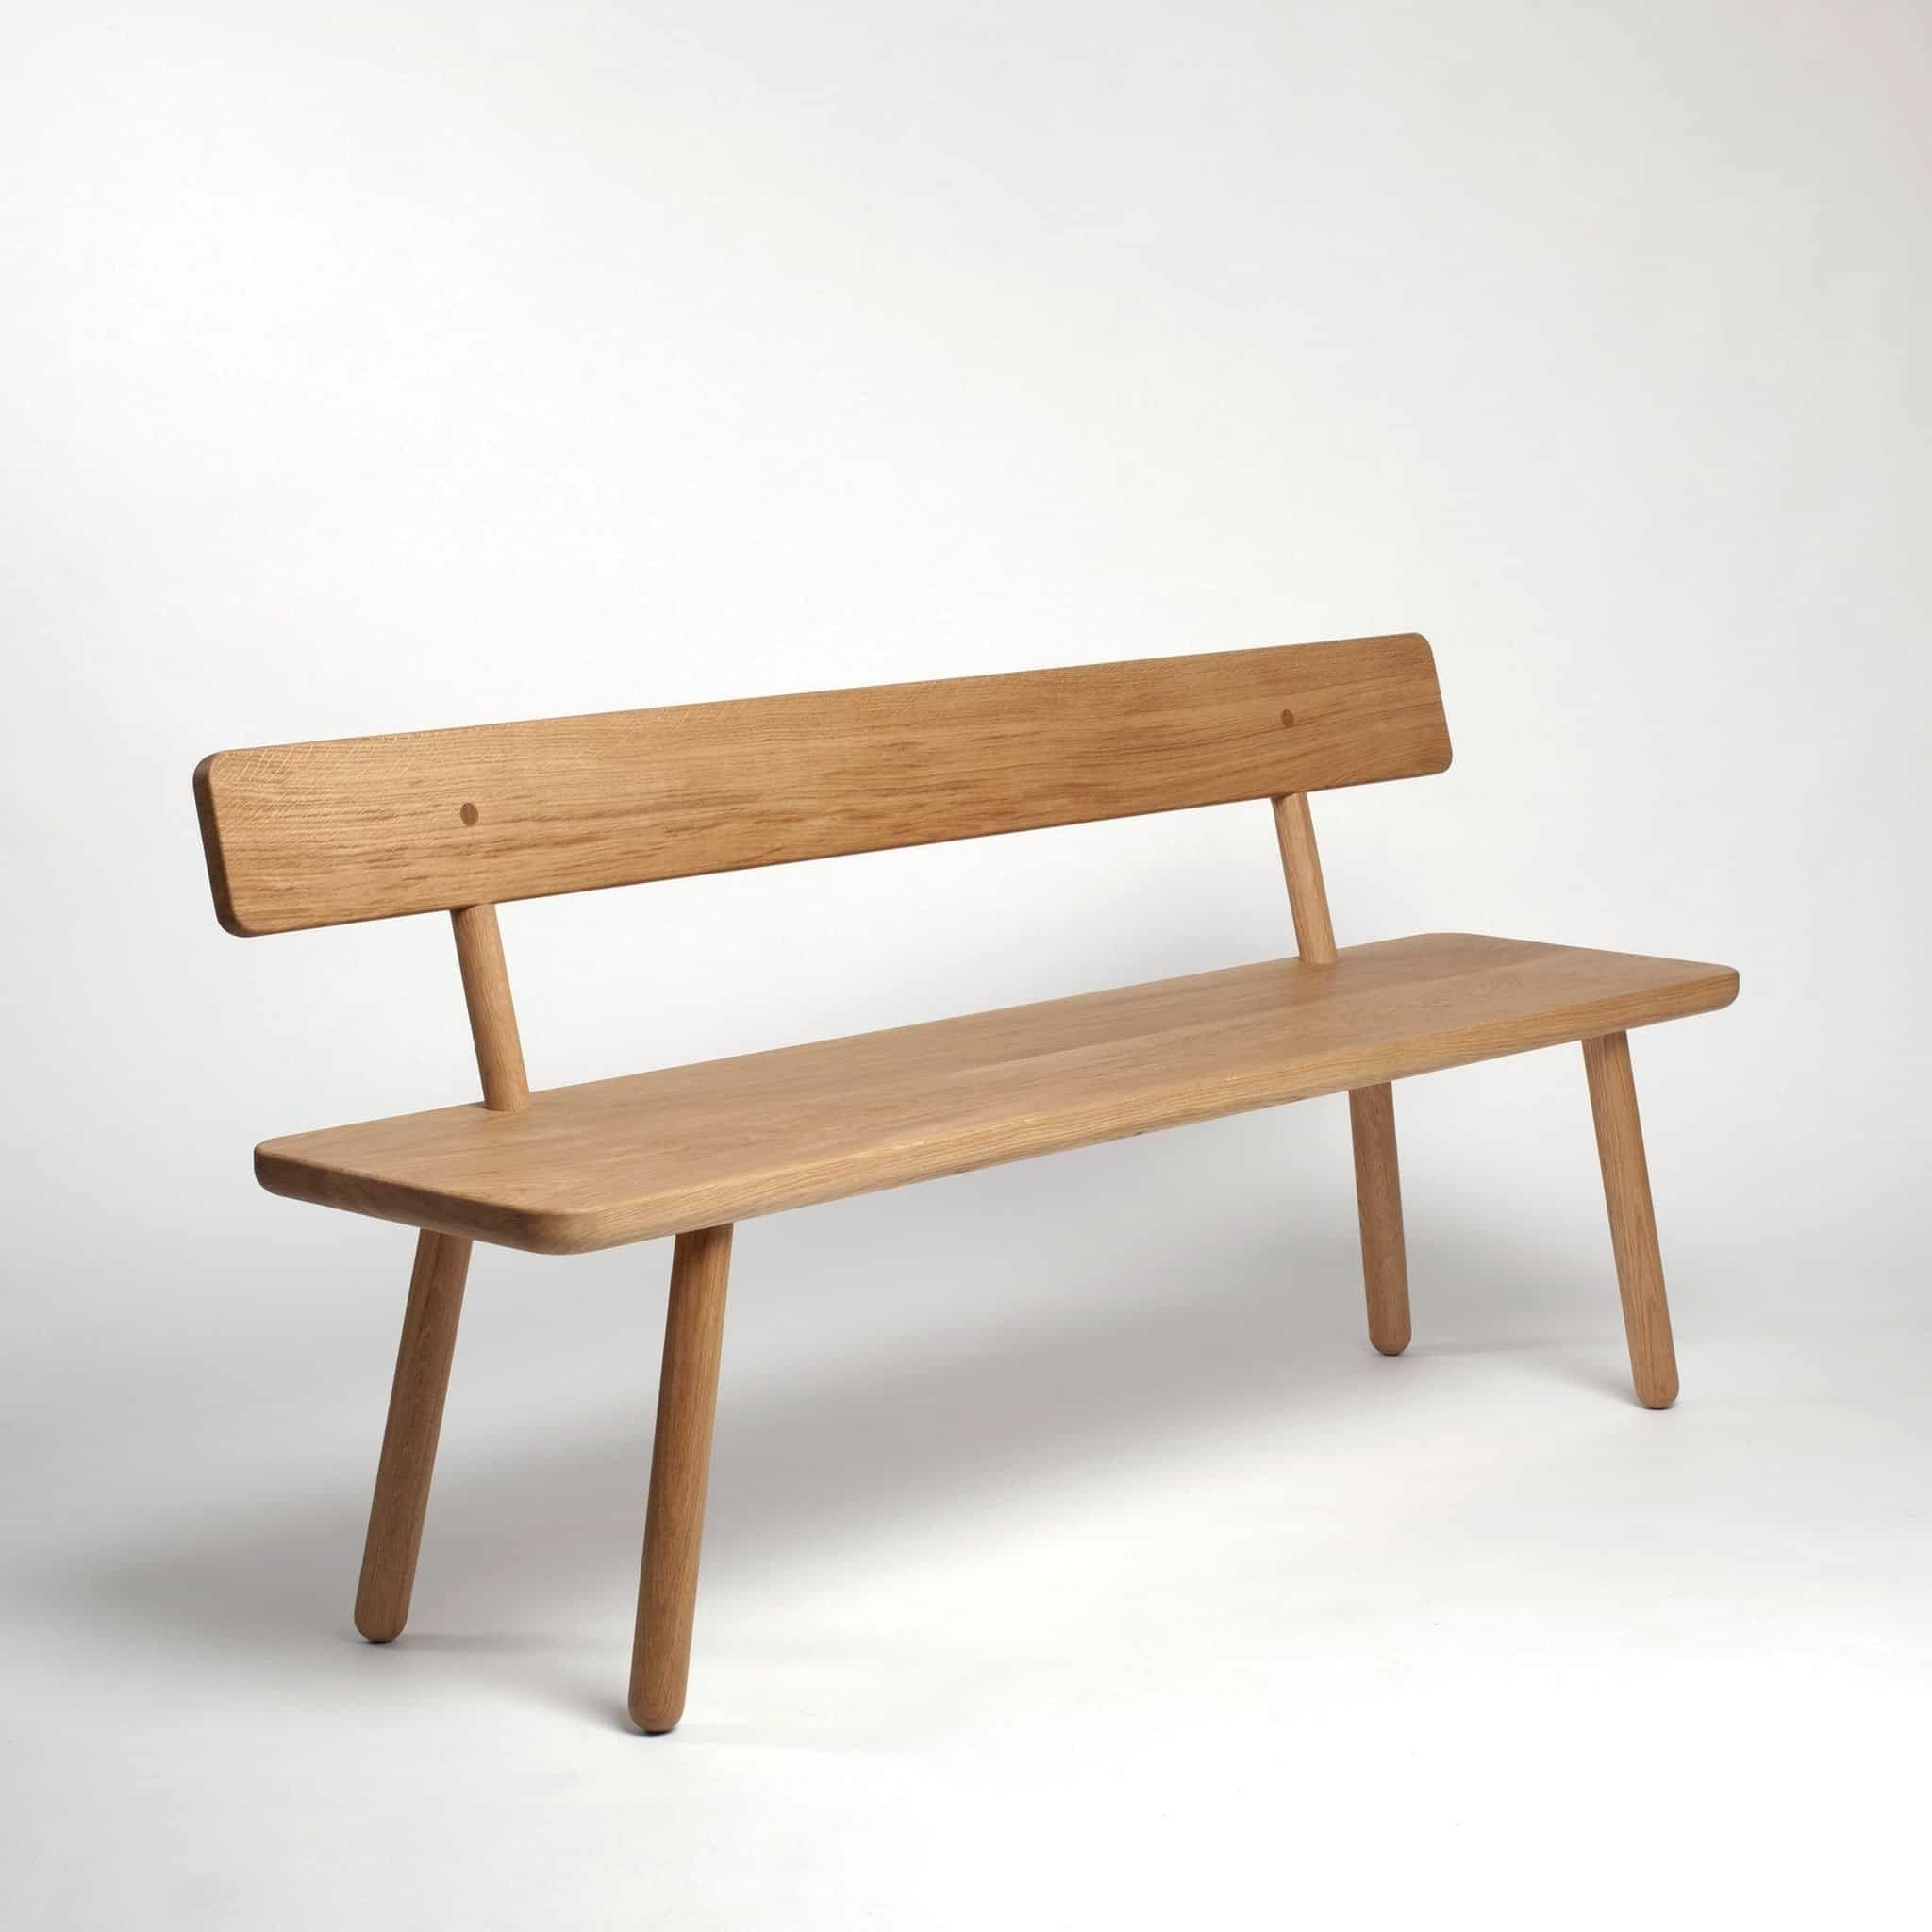 Bench Back One Oak Series One Furniture Another Country Dining Bench With Back Dining Table With Bench Bench With Back